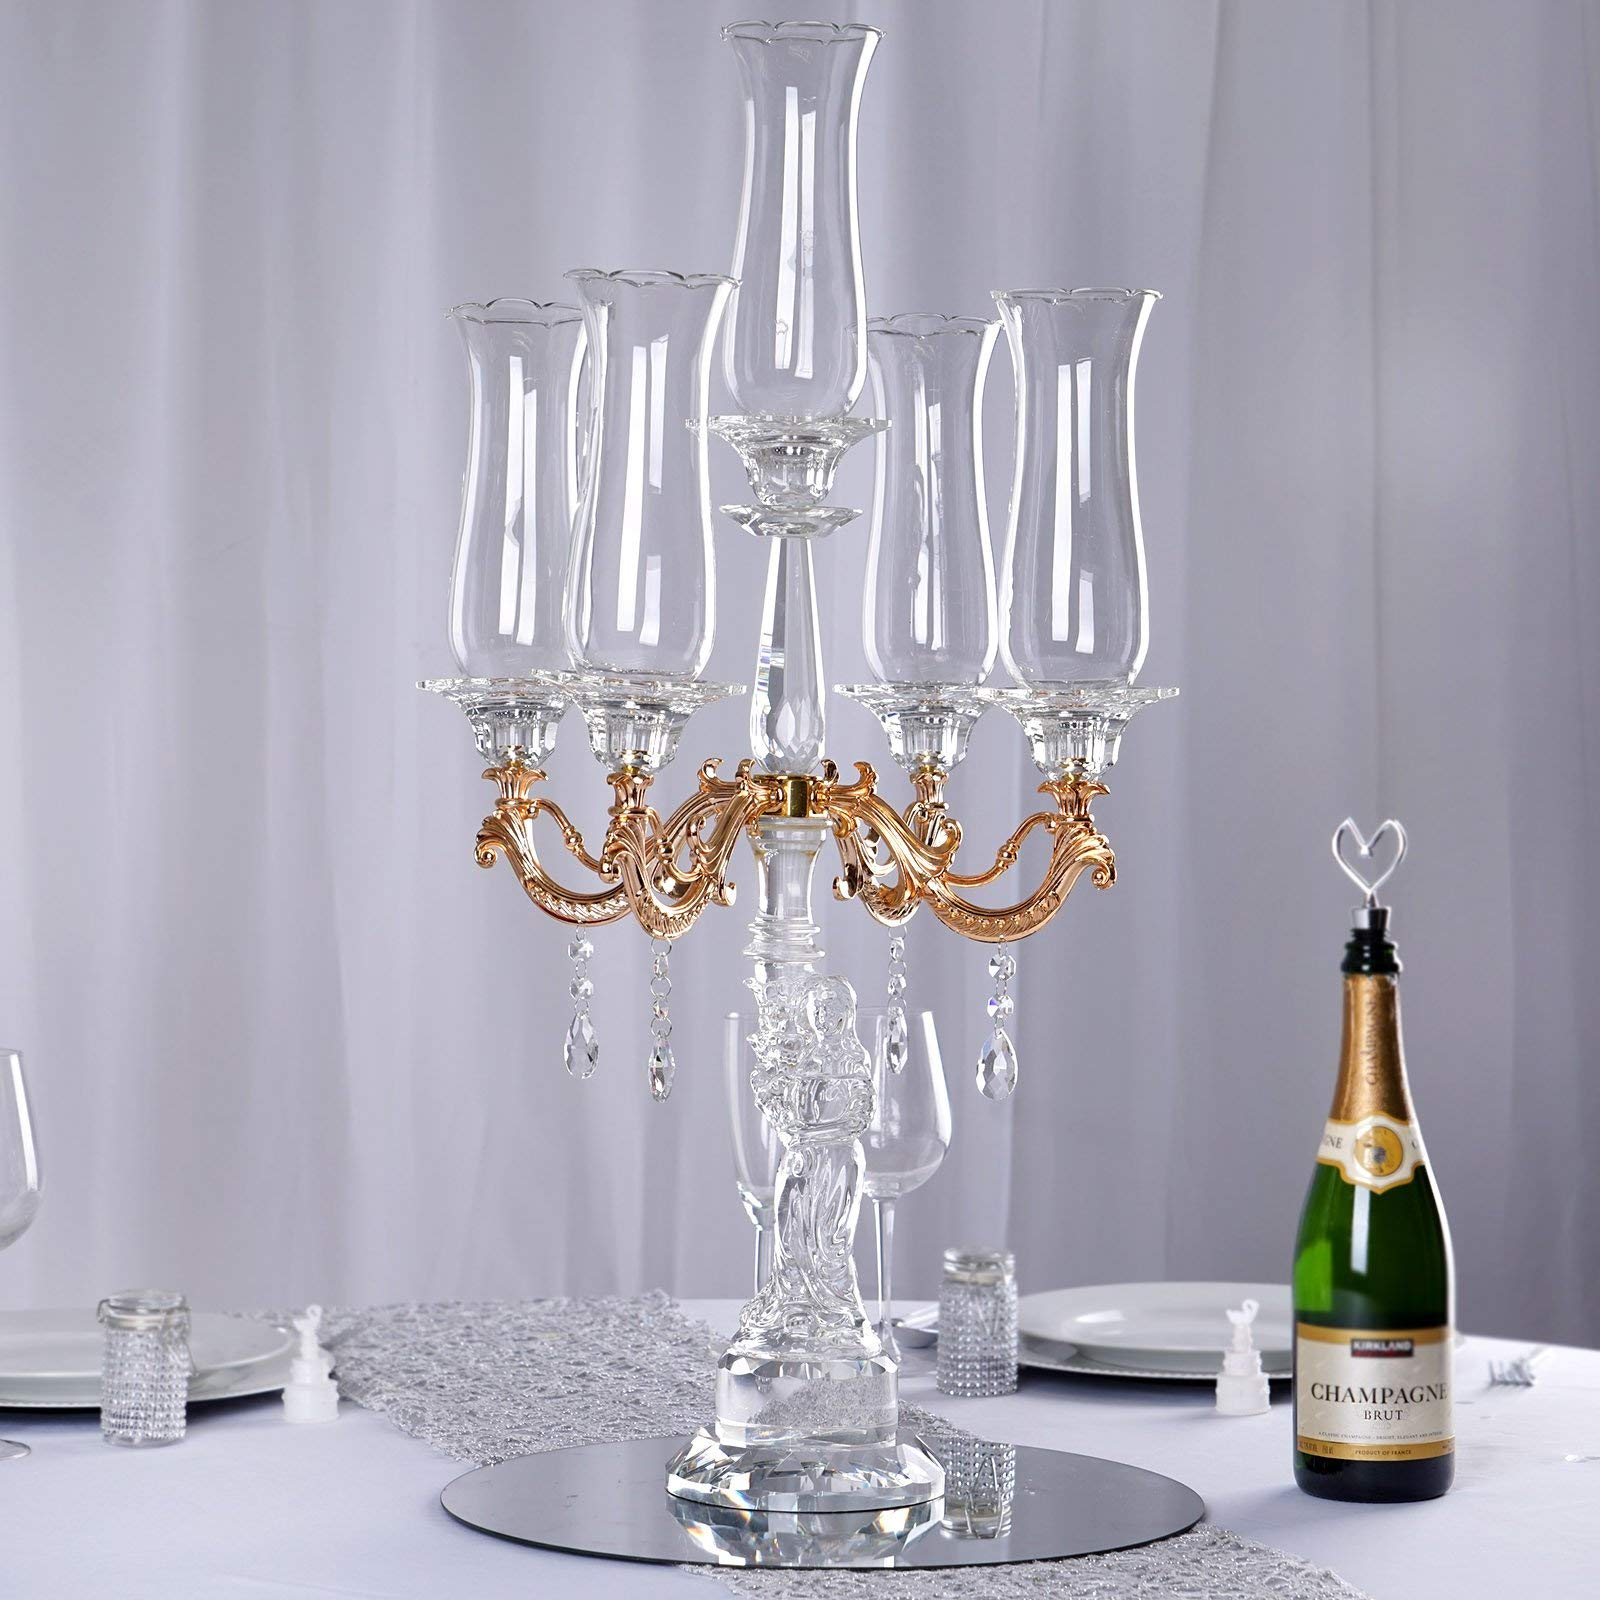 Efavormart 31'' Tall 5 Arm Gold Sculpted Crystal Glass Table Top Candelabra Hurricane Taper Candle Holder Centerpieces - Premium